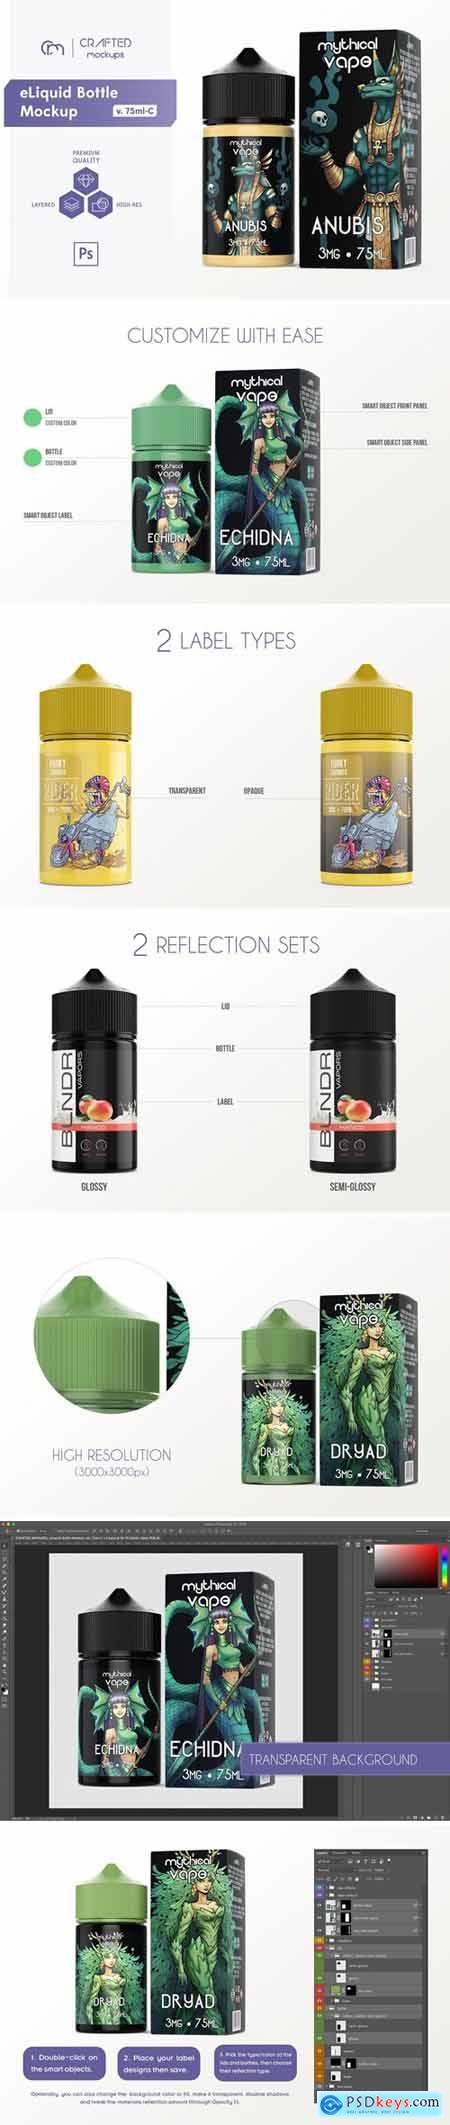 eLiquid Bottle Mockup v. 75ml-C 4088594